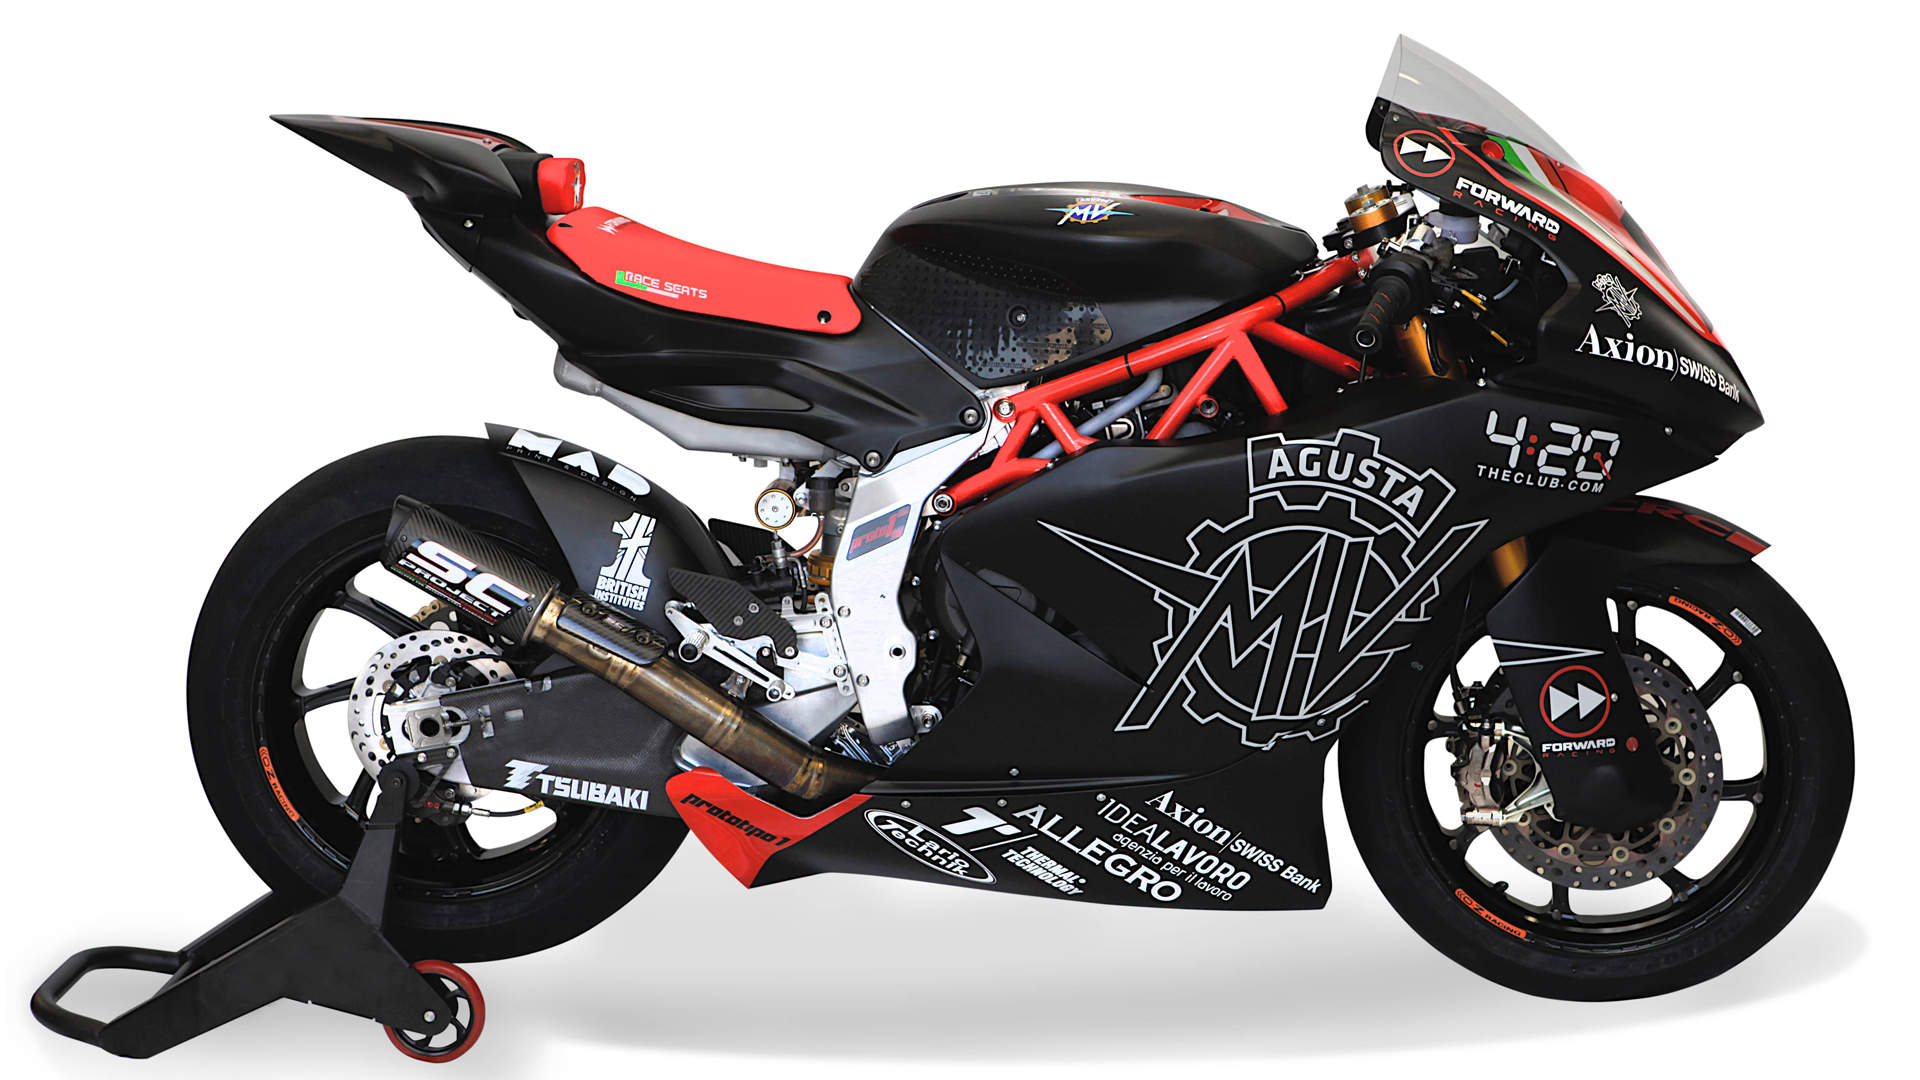 MV Agusta fields a Moto2 bike for 2019